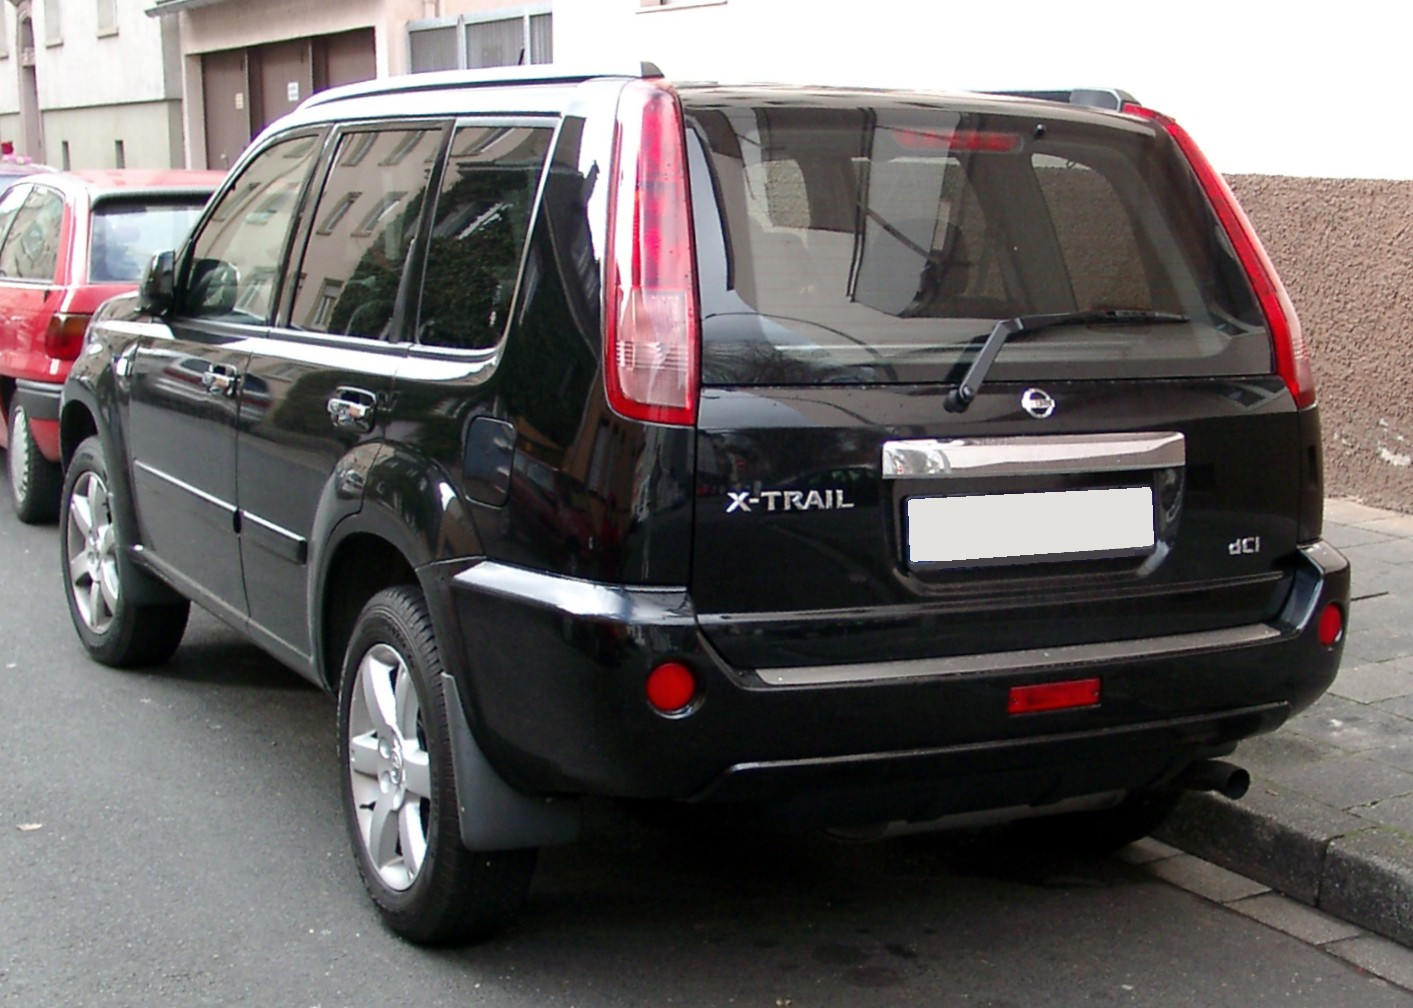 file nissan x trail rear wikimedia commons. Black Bedroom Furniture Sets. Home Design Ideas